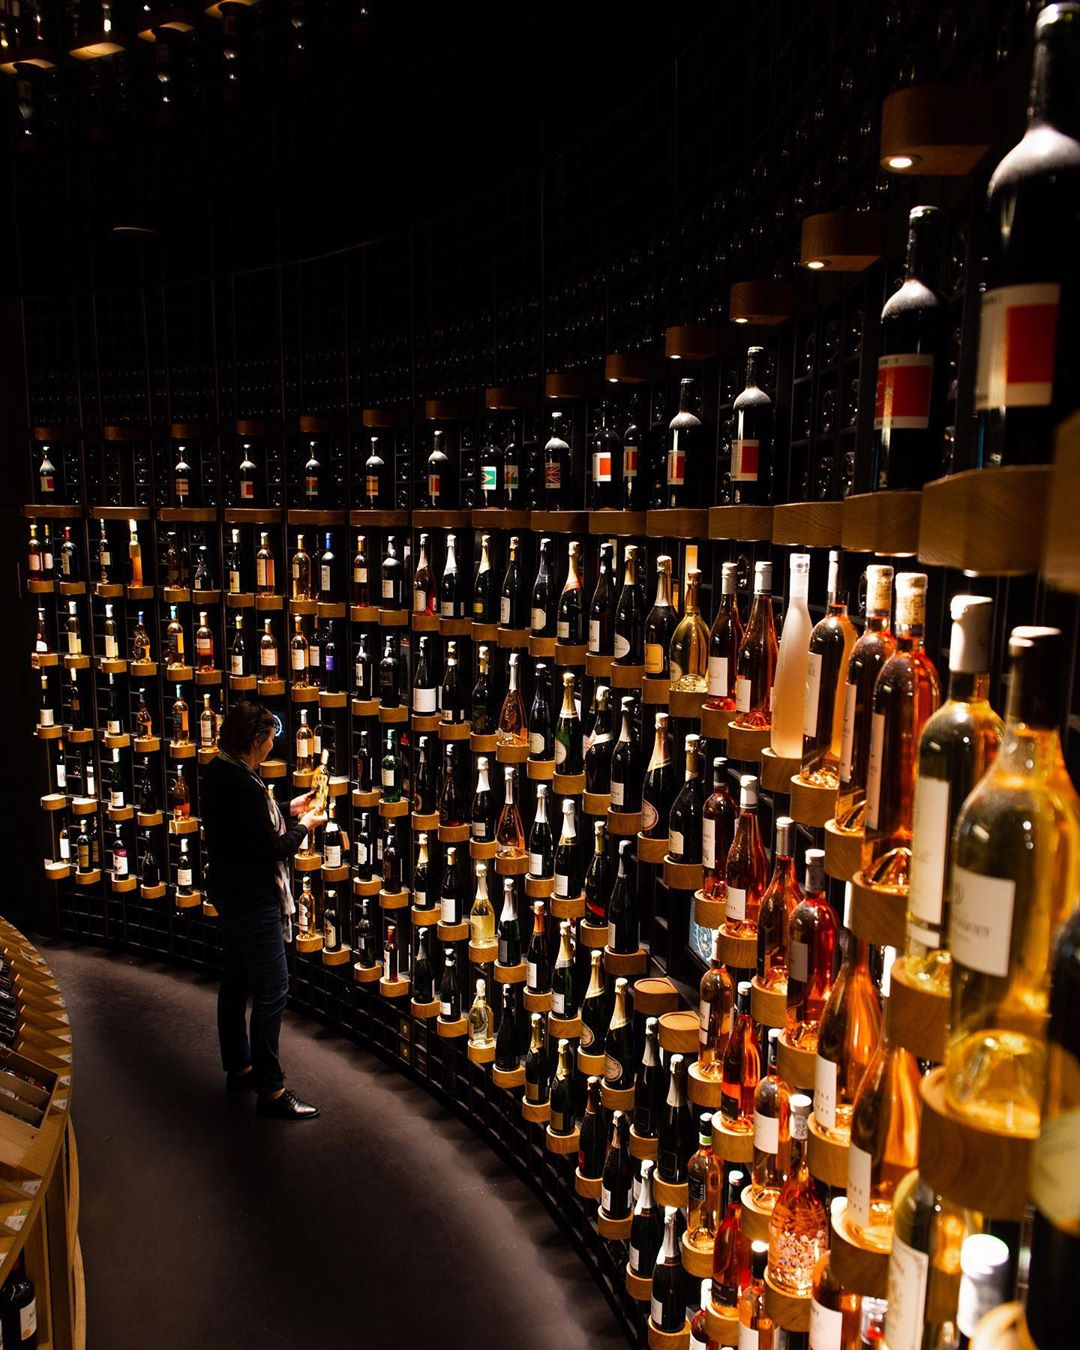 There are more than 14,000 bottle of booze to get stuck into. Credit: La Cite du Vin